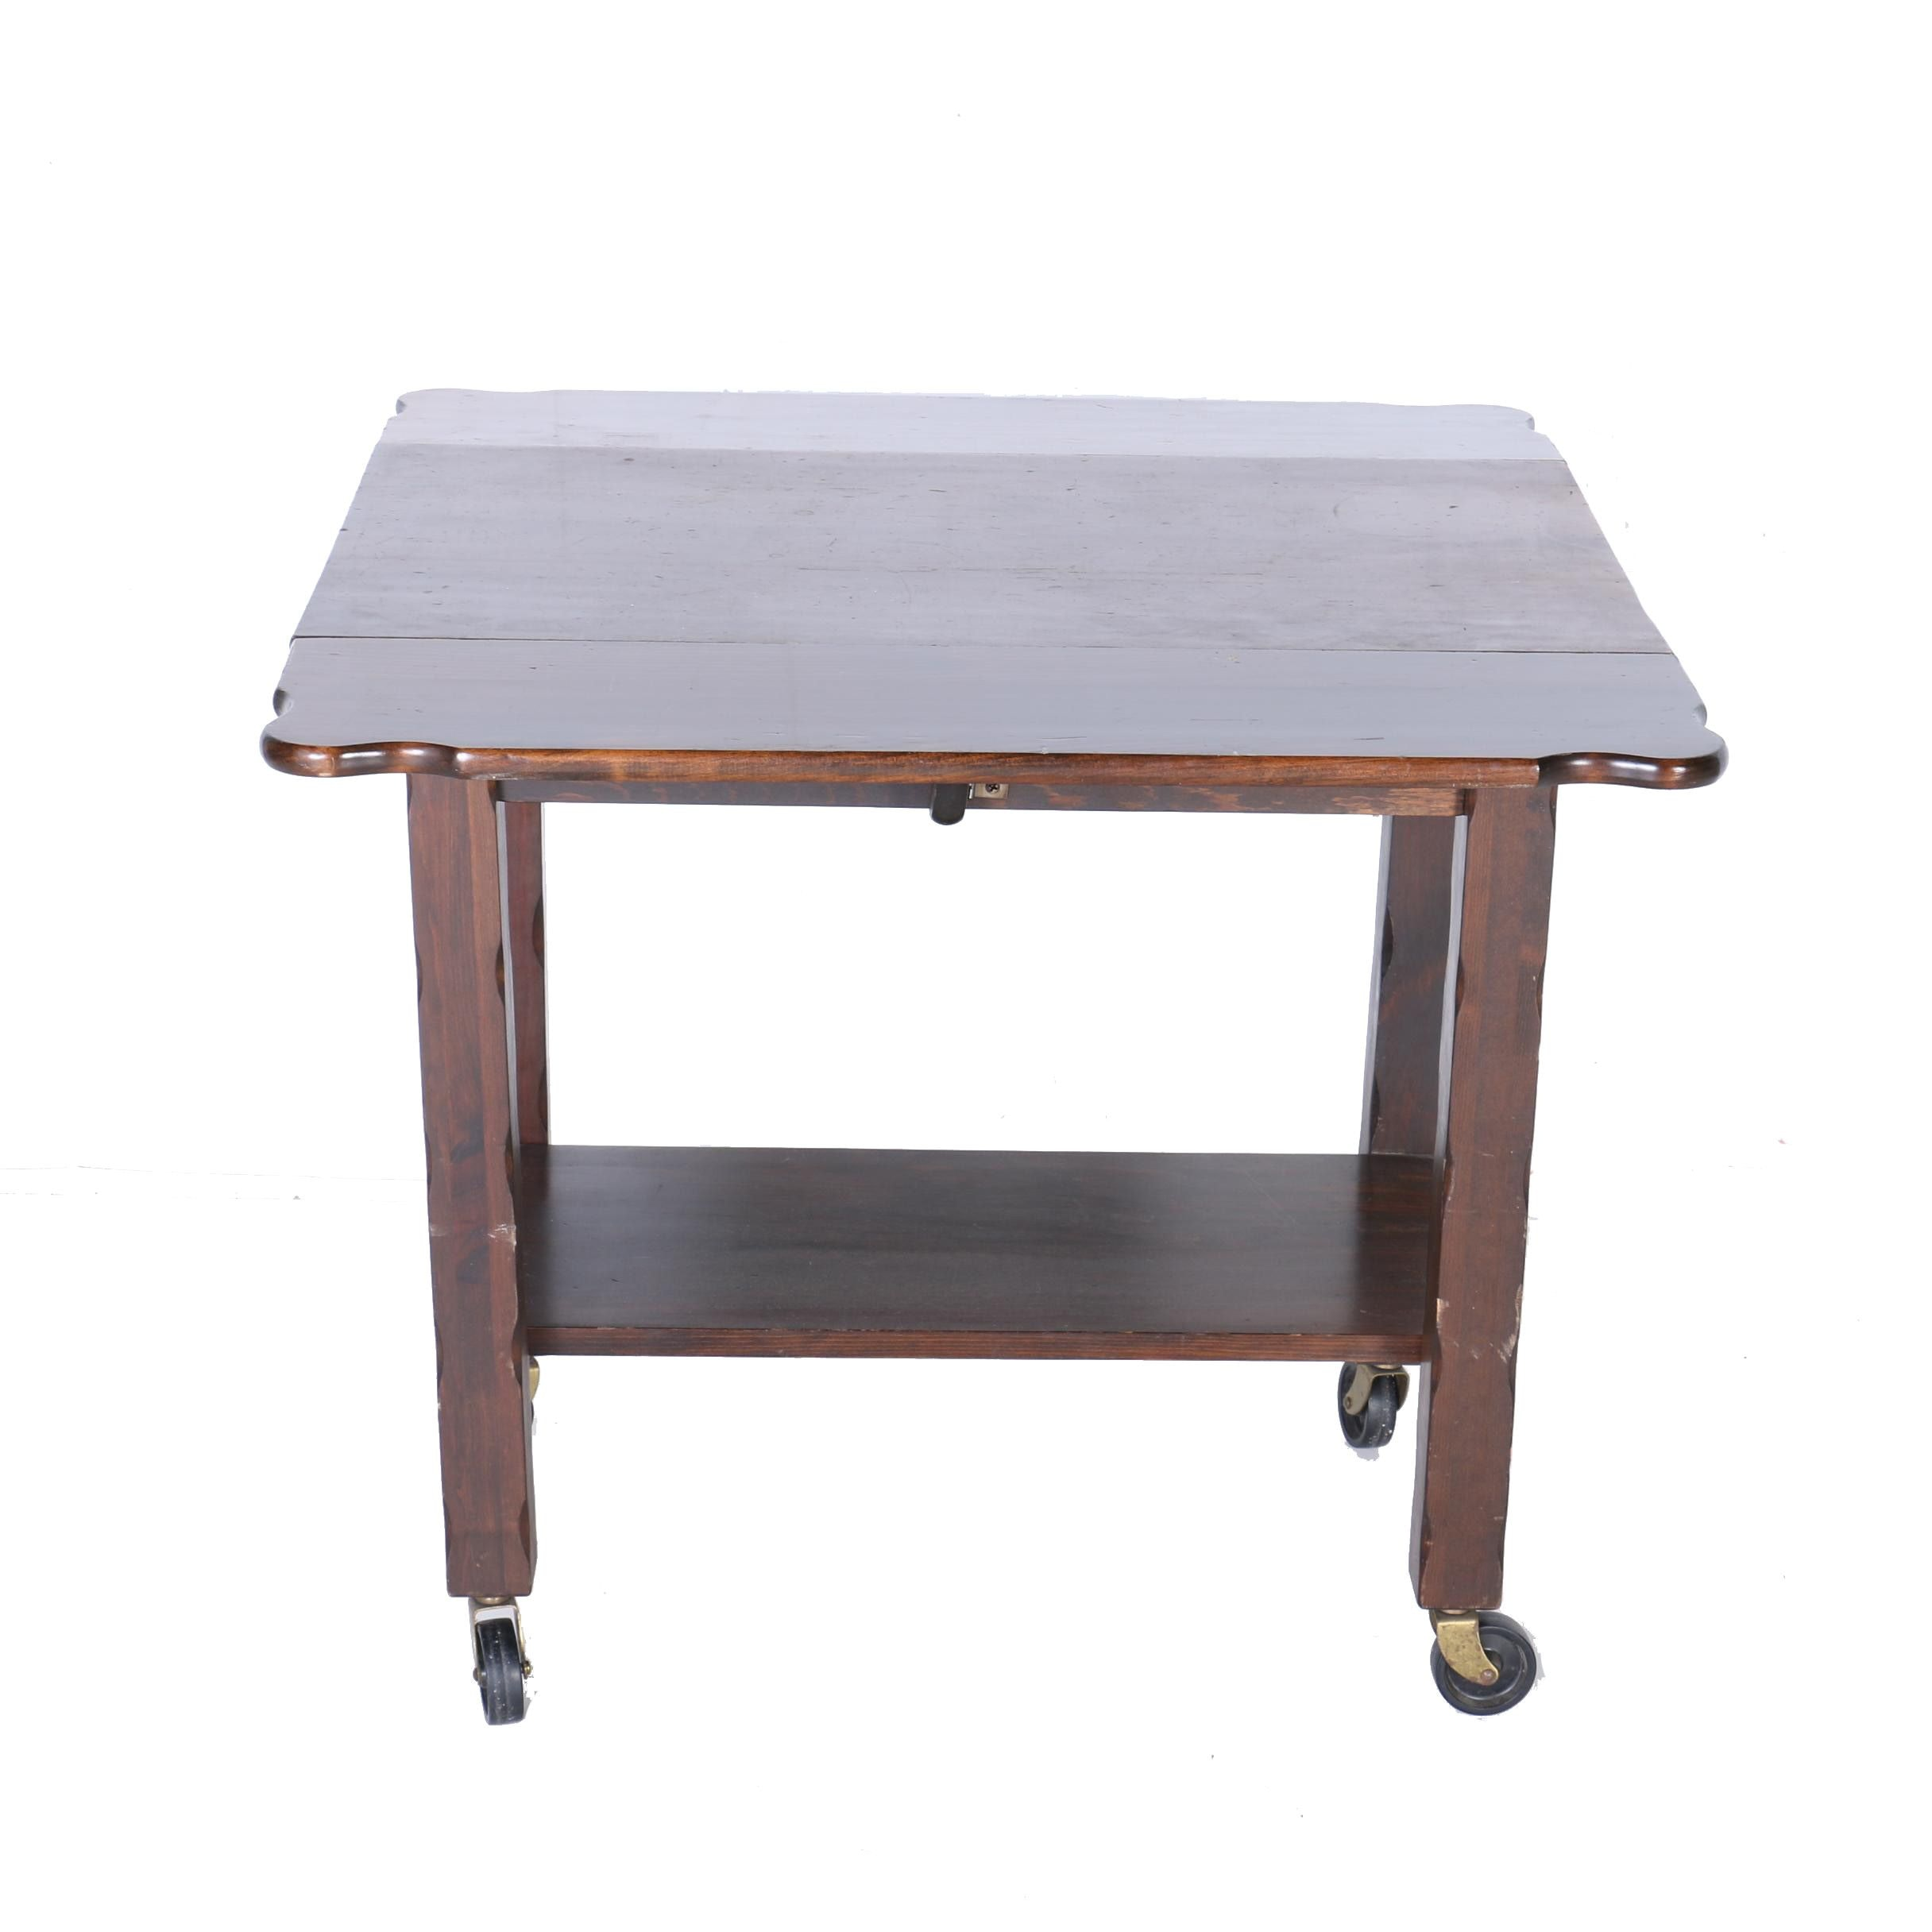 Distressed Style Drop Leaf Table